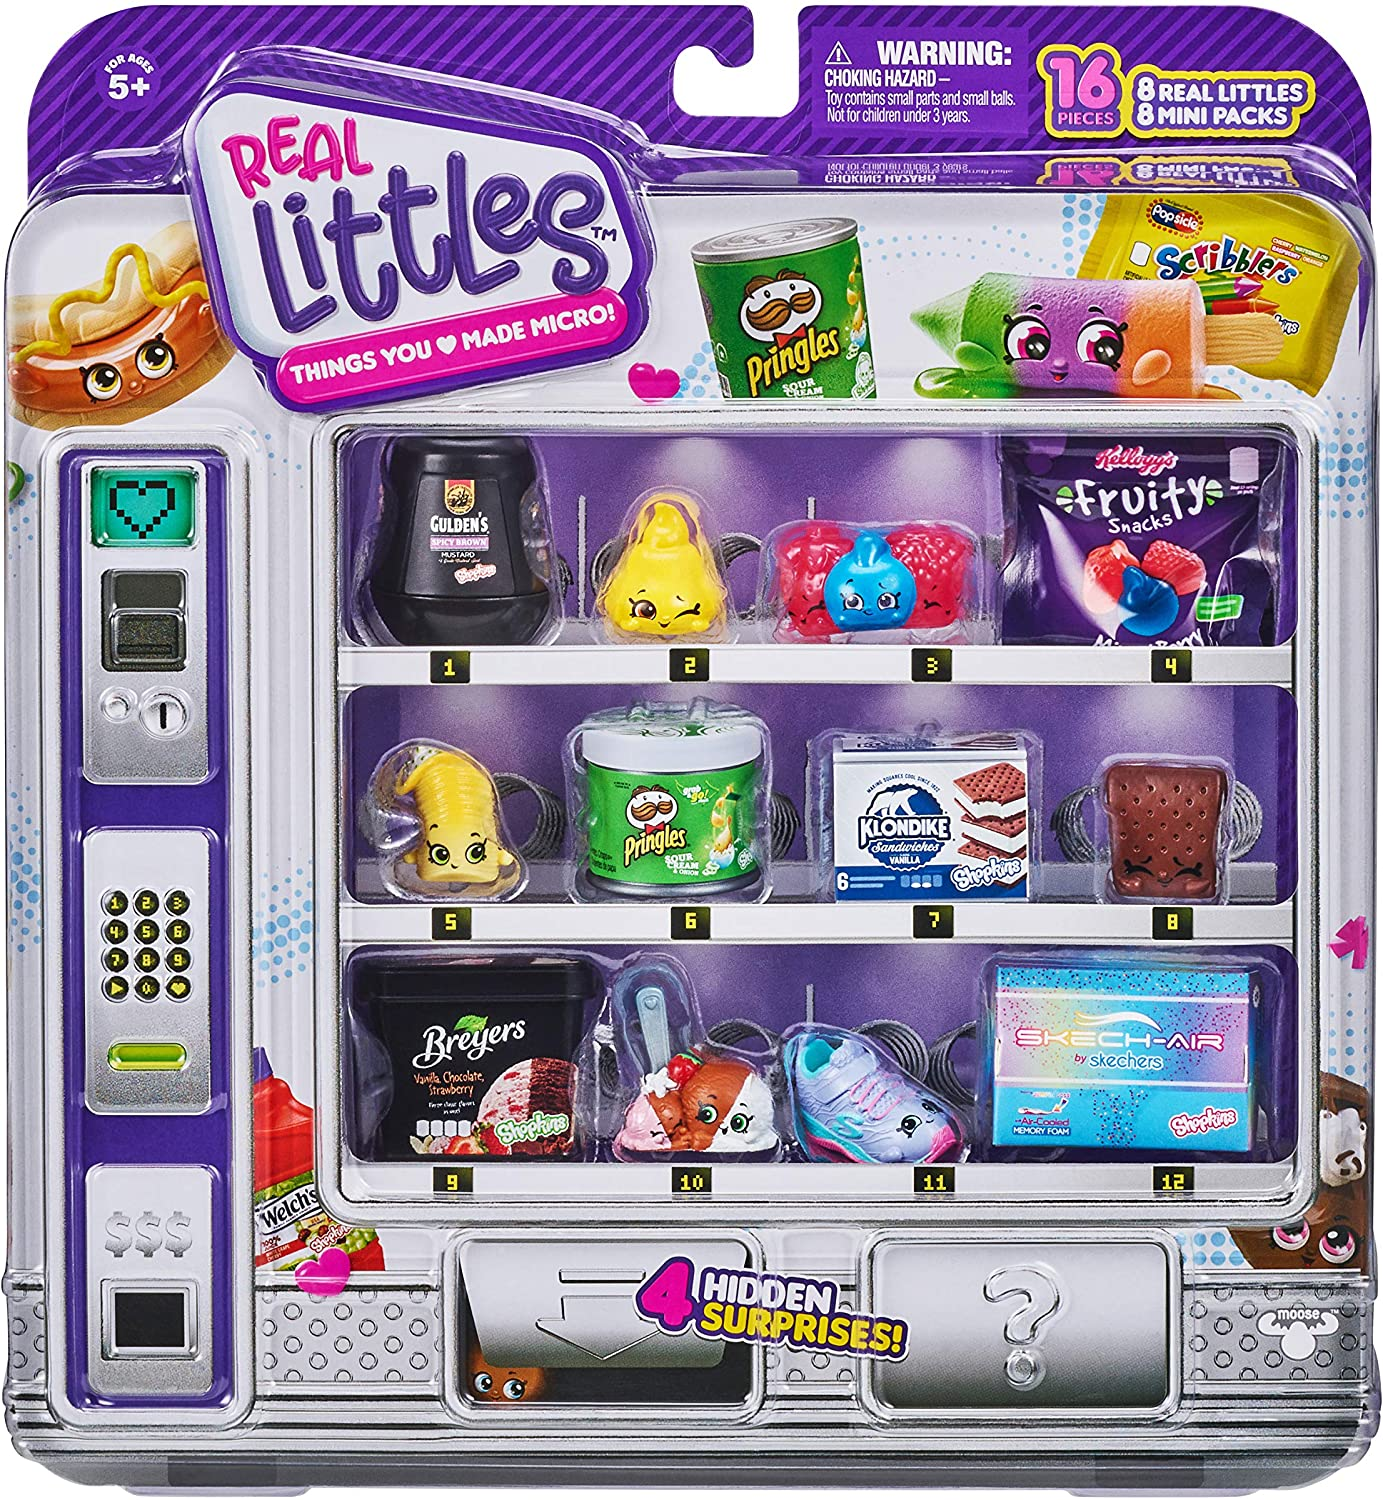 Shopkins Real Littles Shopper Pack | 8 Real Littles Plus 8 Real Branded Mini Packs (16 Total Pieces). Styles May Vary, Multicolor (57787)